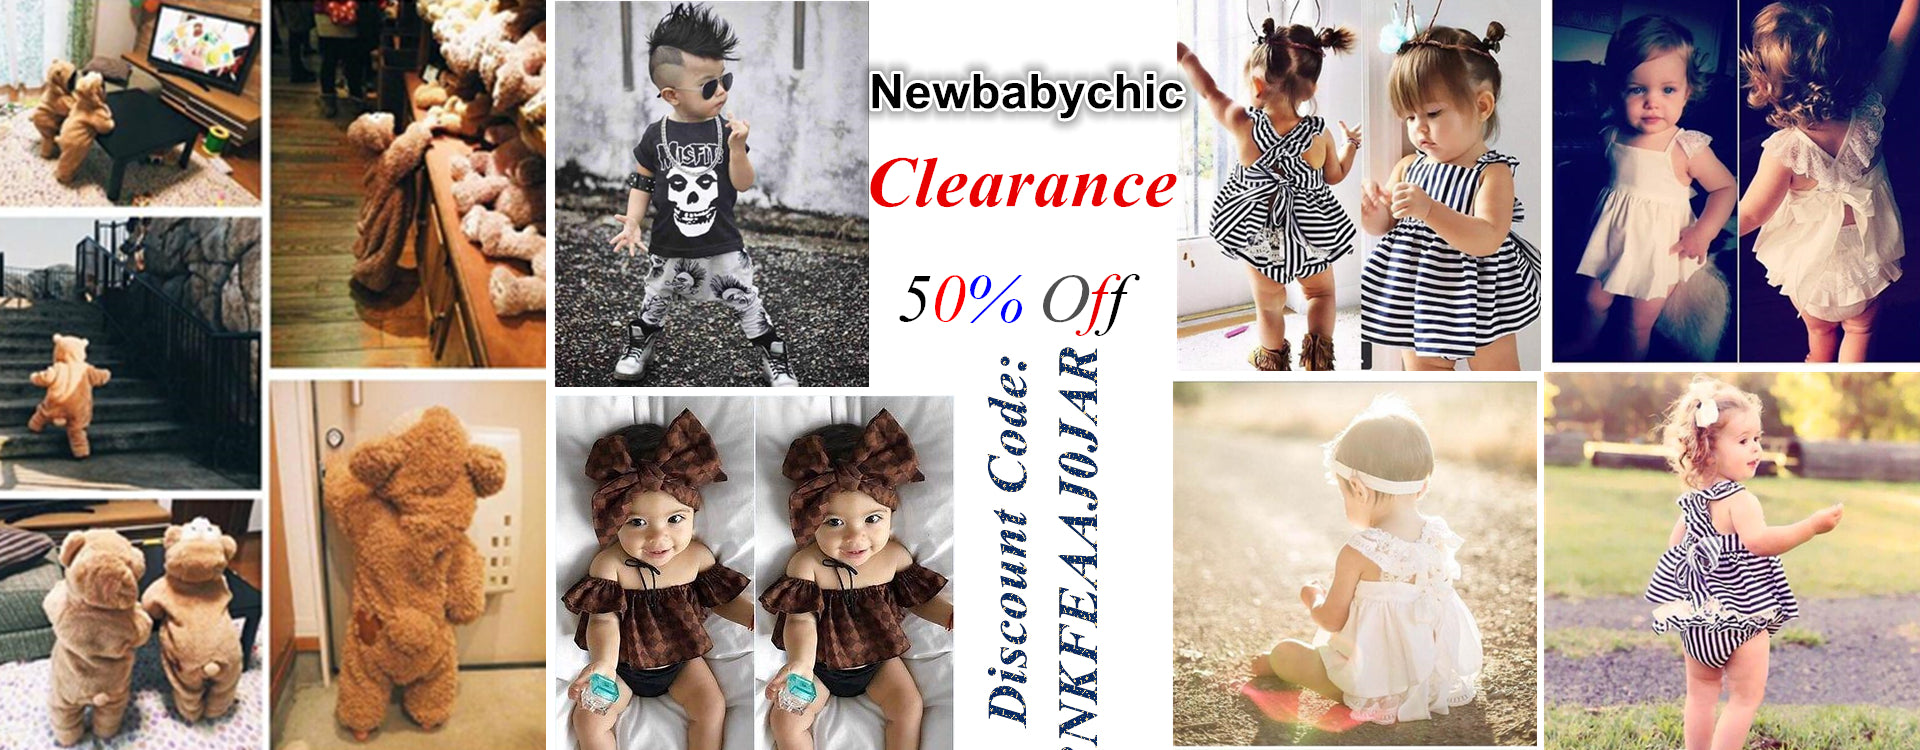 Newbabychic Clearance To Enjoy 50% Off